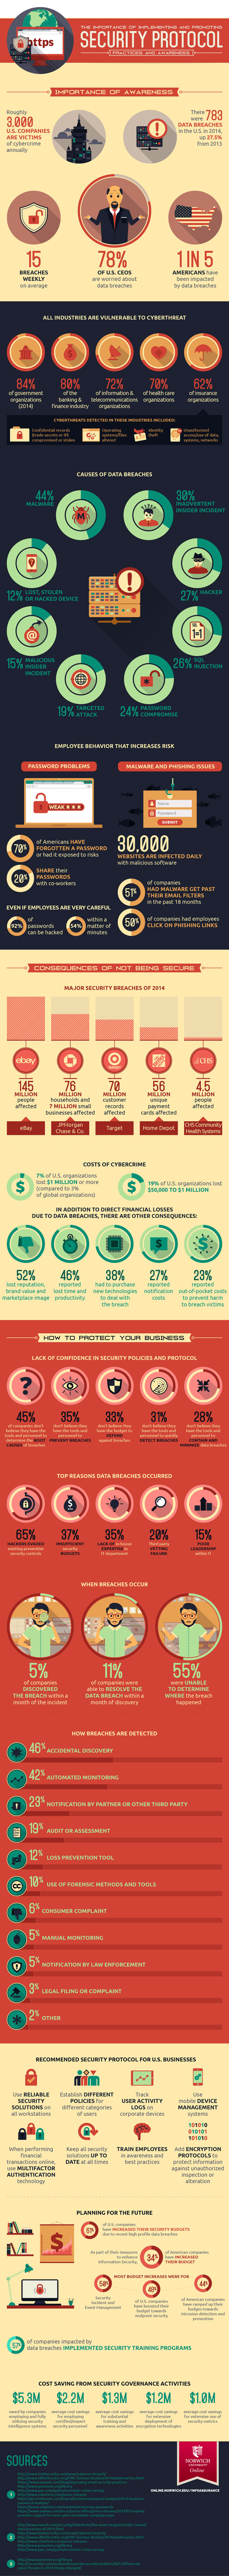 infographic on implementing security protocol practices